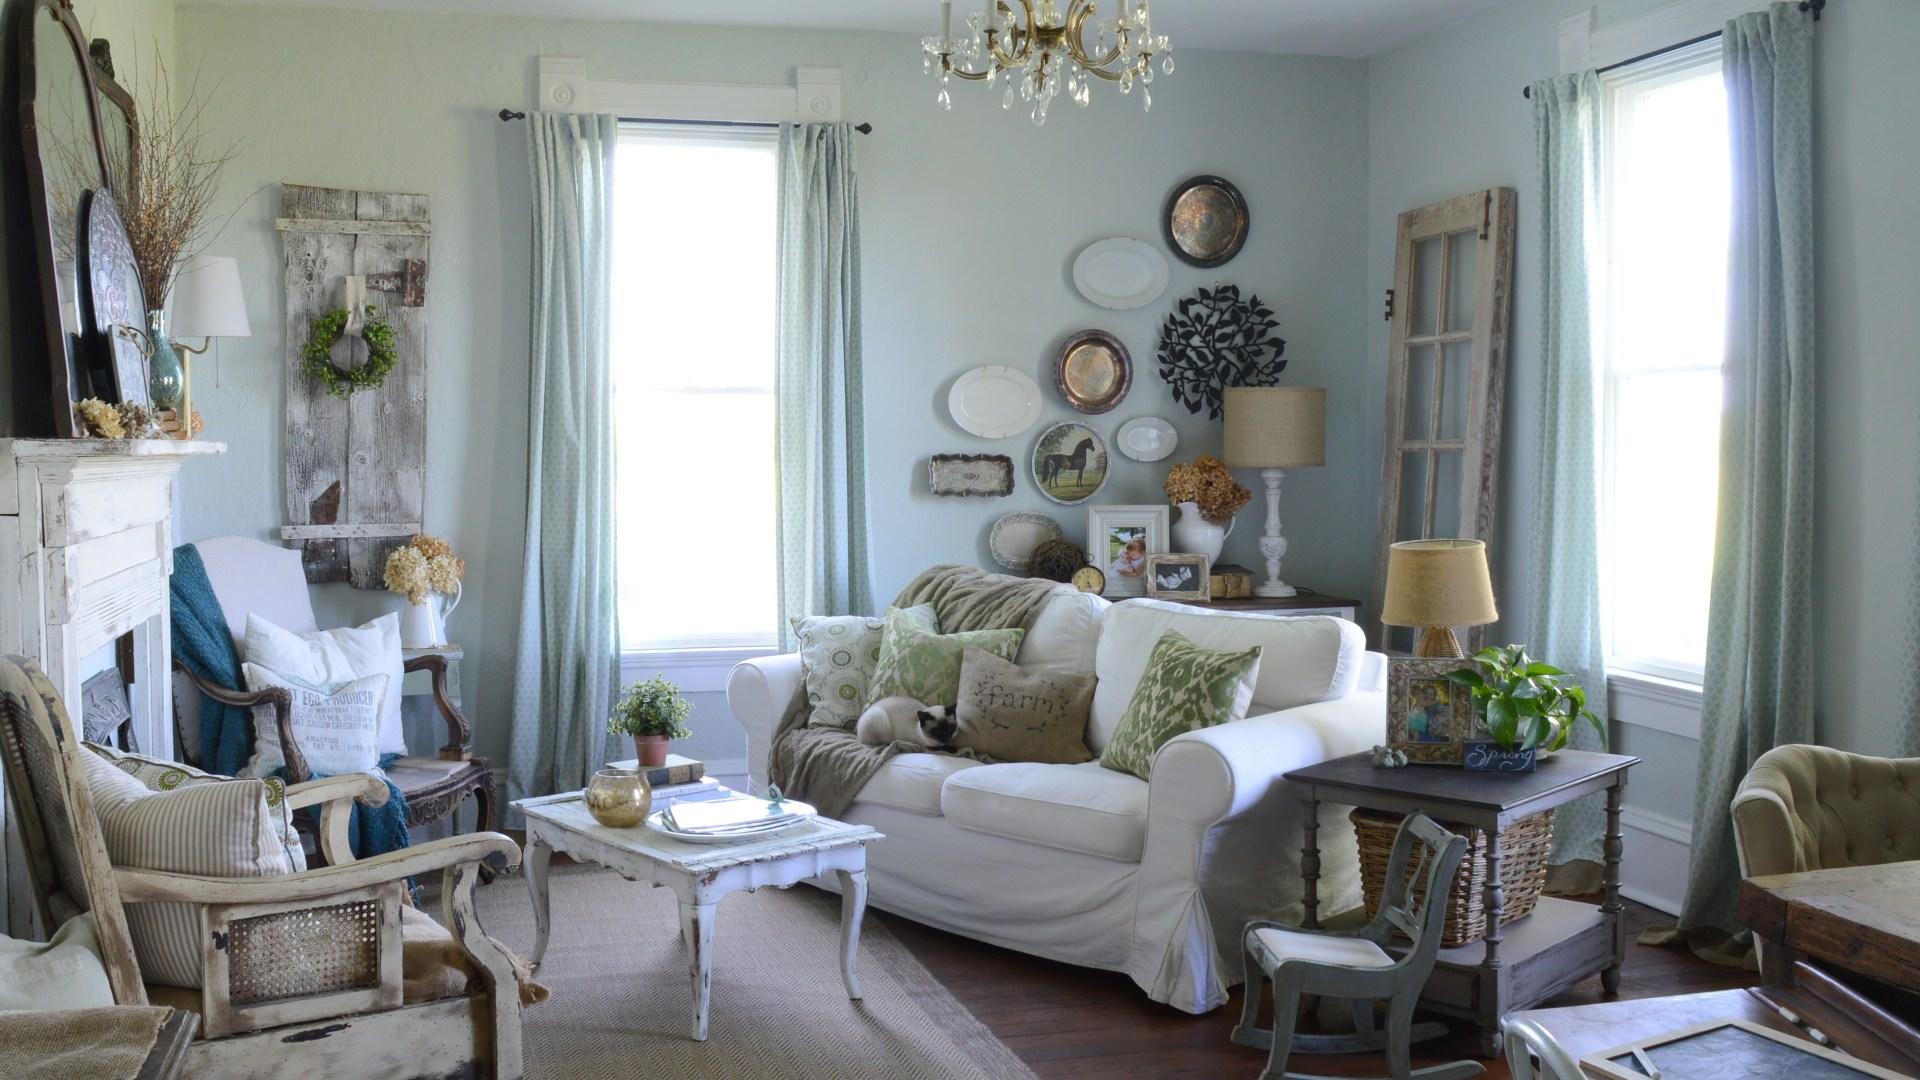 Farmhouse Living Room Tour {Spring 2016}